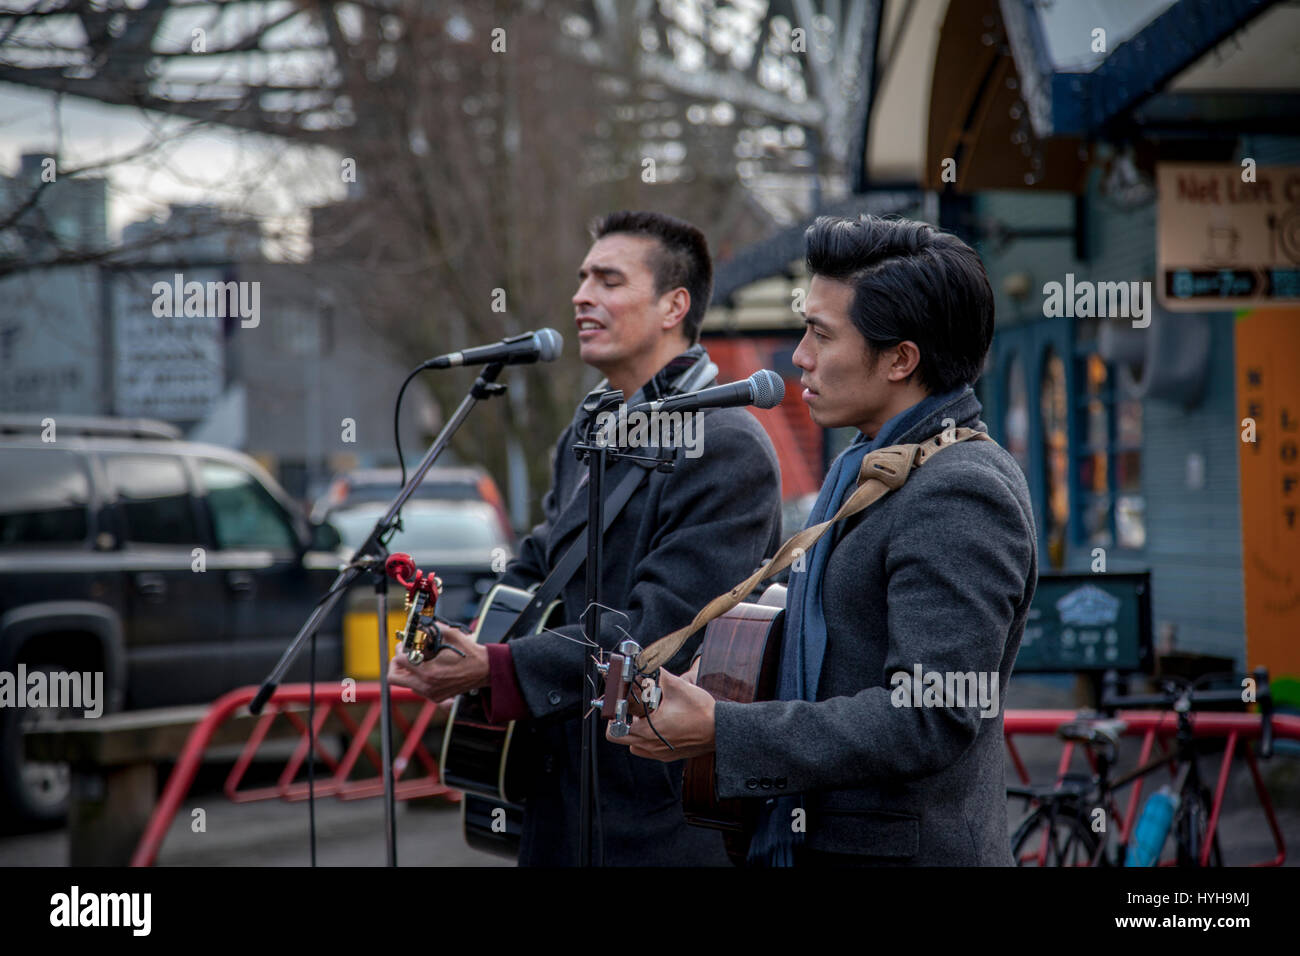 Young guitarists and singer performing outdoors, Granville Island, Vancouver, British Columbia, Canada - Stock Image